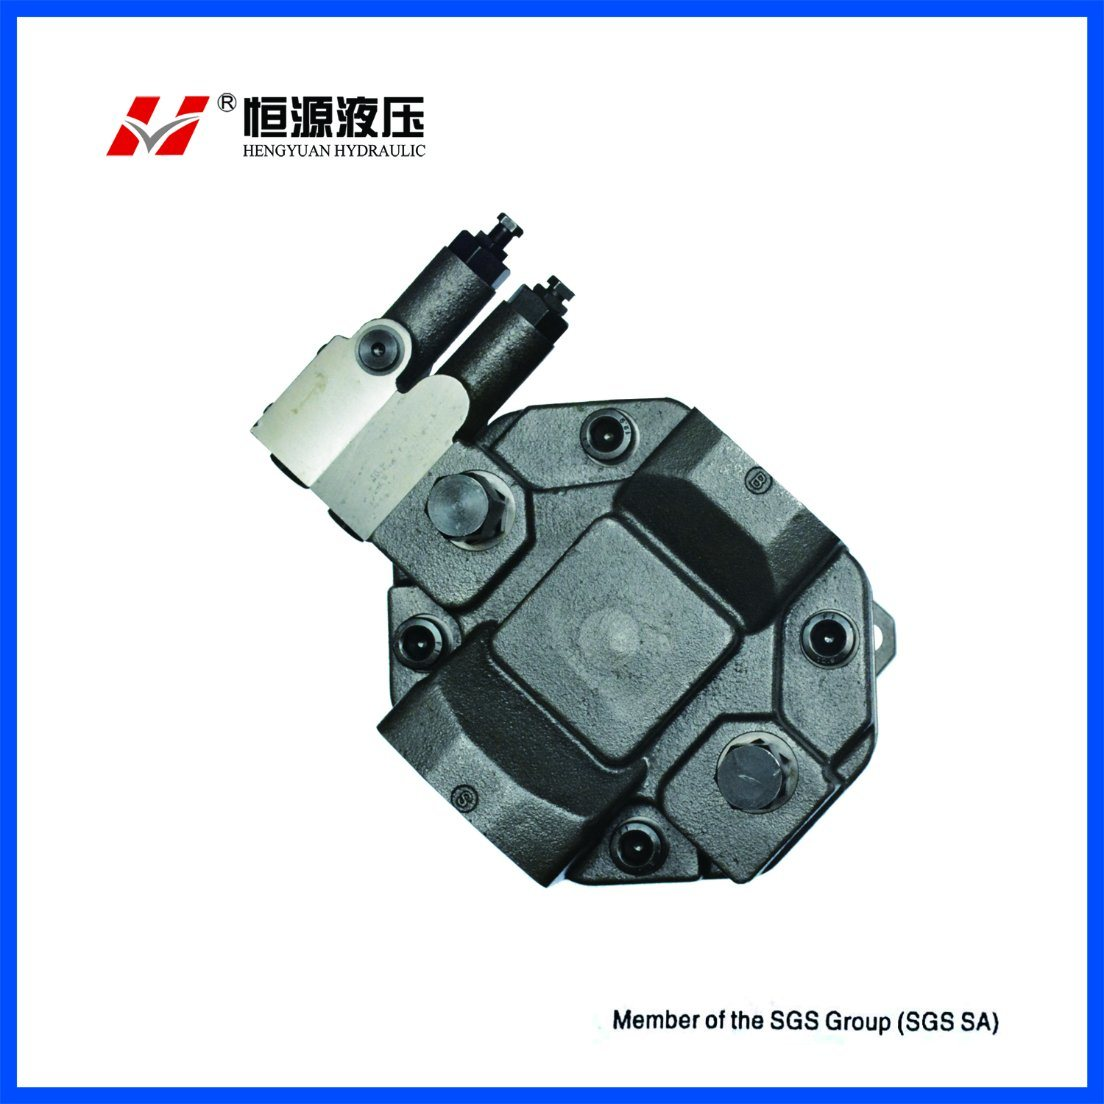 Rexroth Hydraulic Piston Pump Ha10vso28dfr/31r-PPA12n00 for Industrial Application